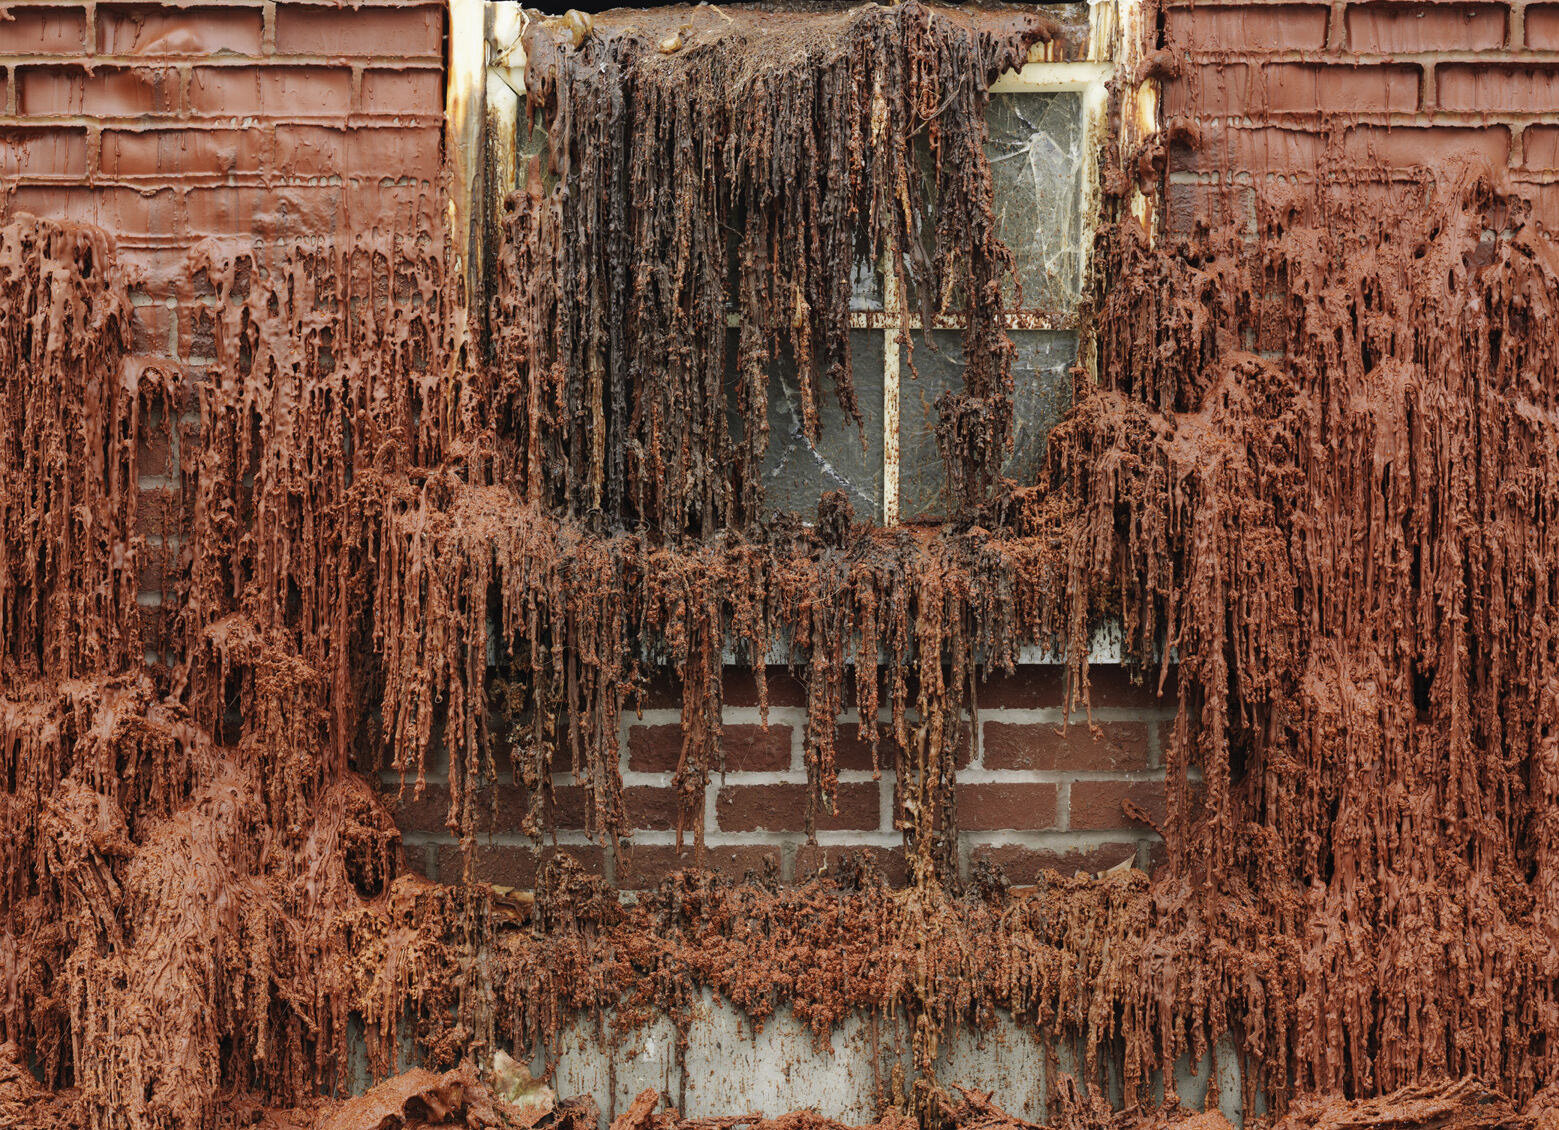 11. Alex Chinneck - A pound of flesh for 50p - Image by Chris Tubbs.jpg